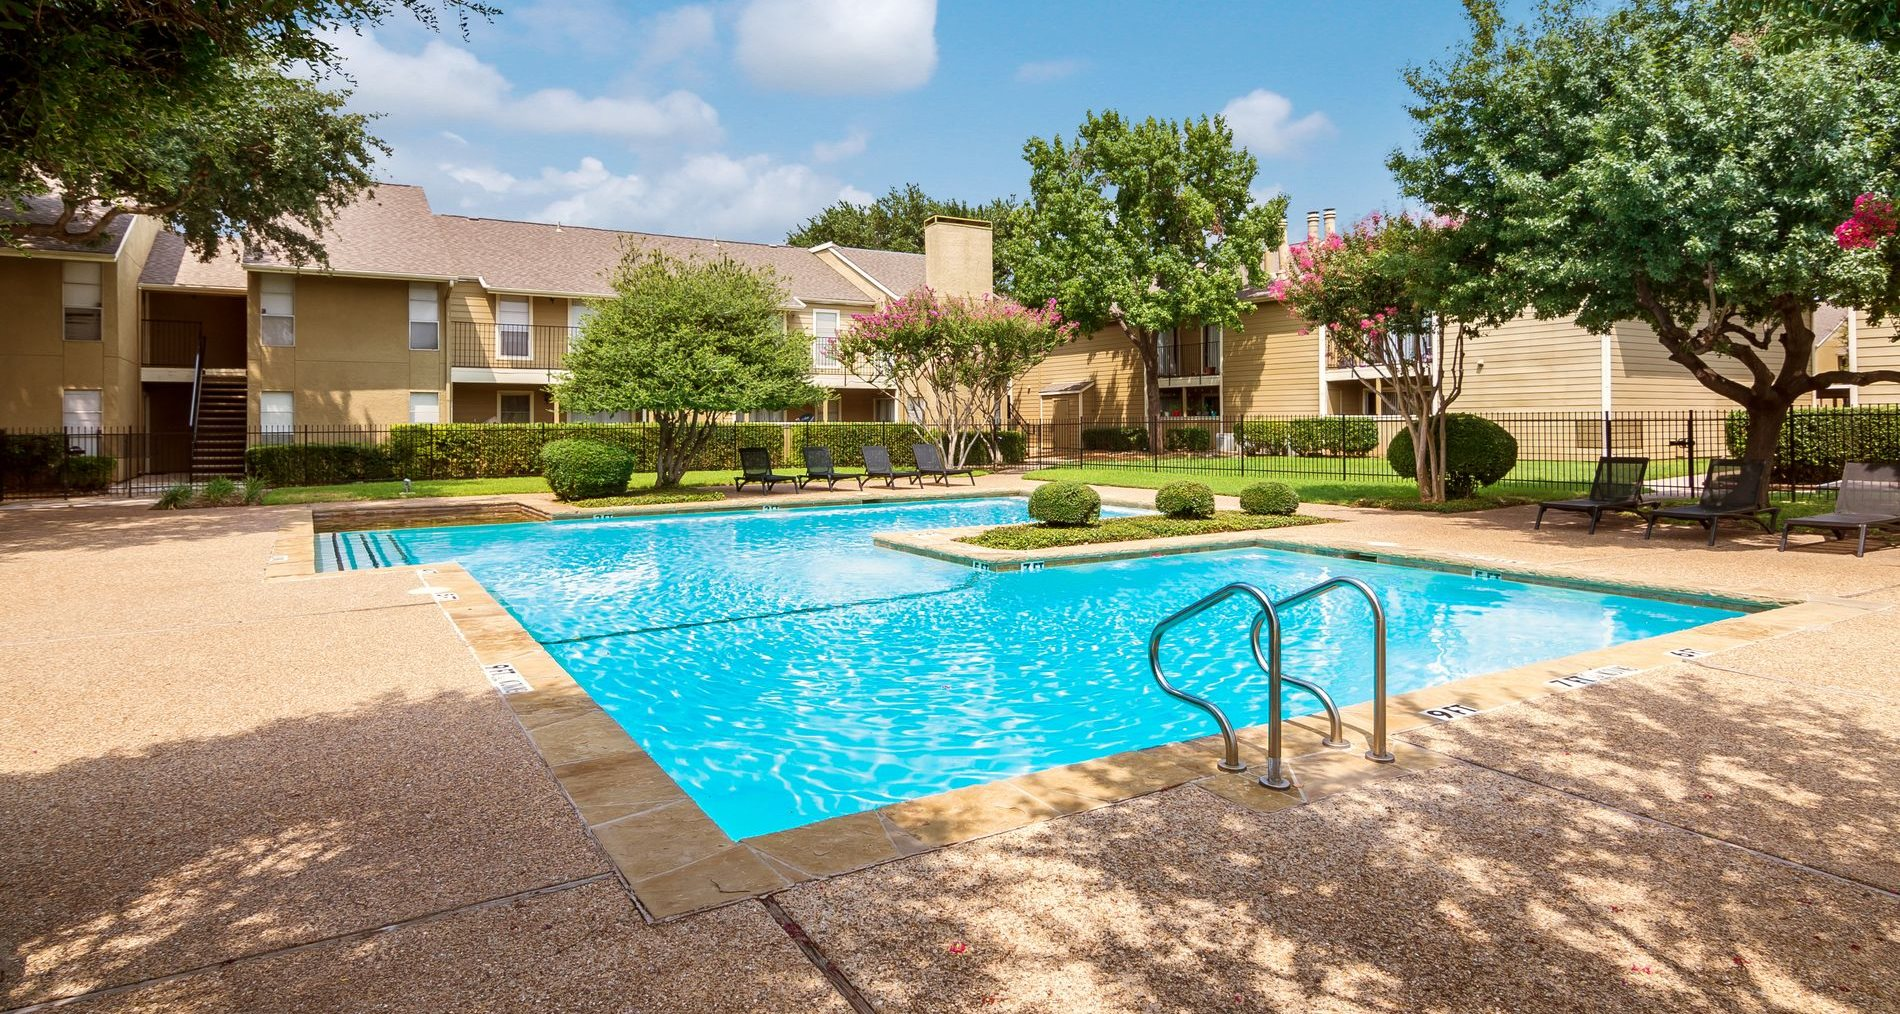 Pool at Windridge Apartments in Dallas, Texas, TX